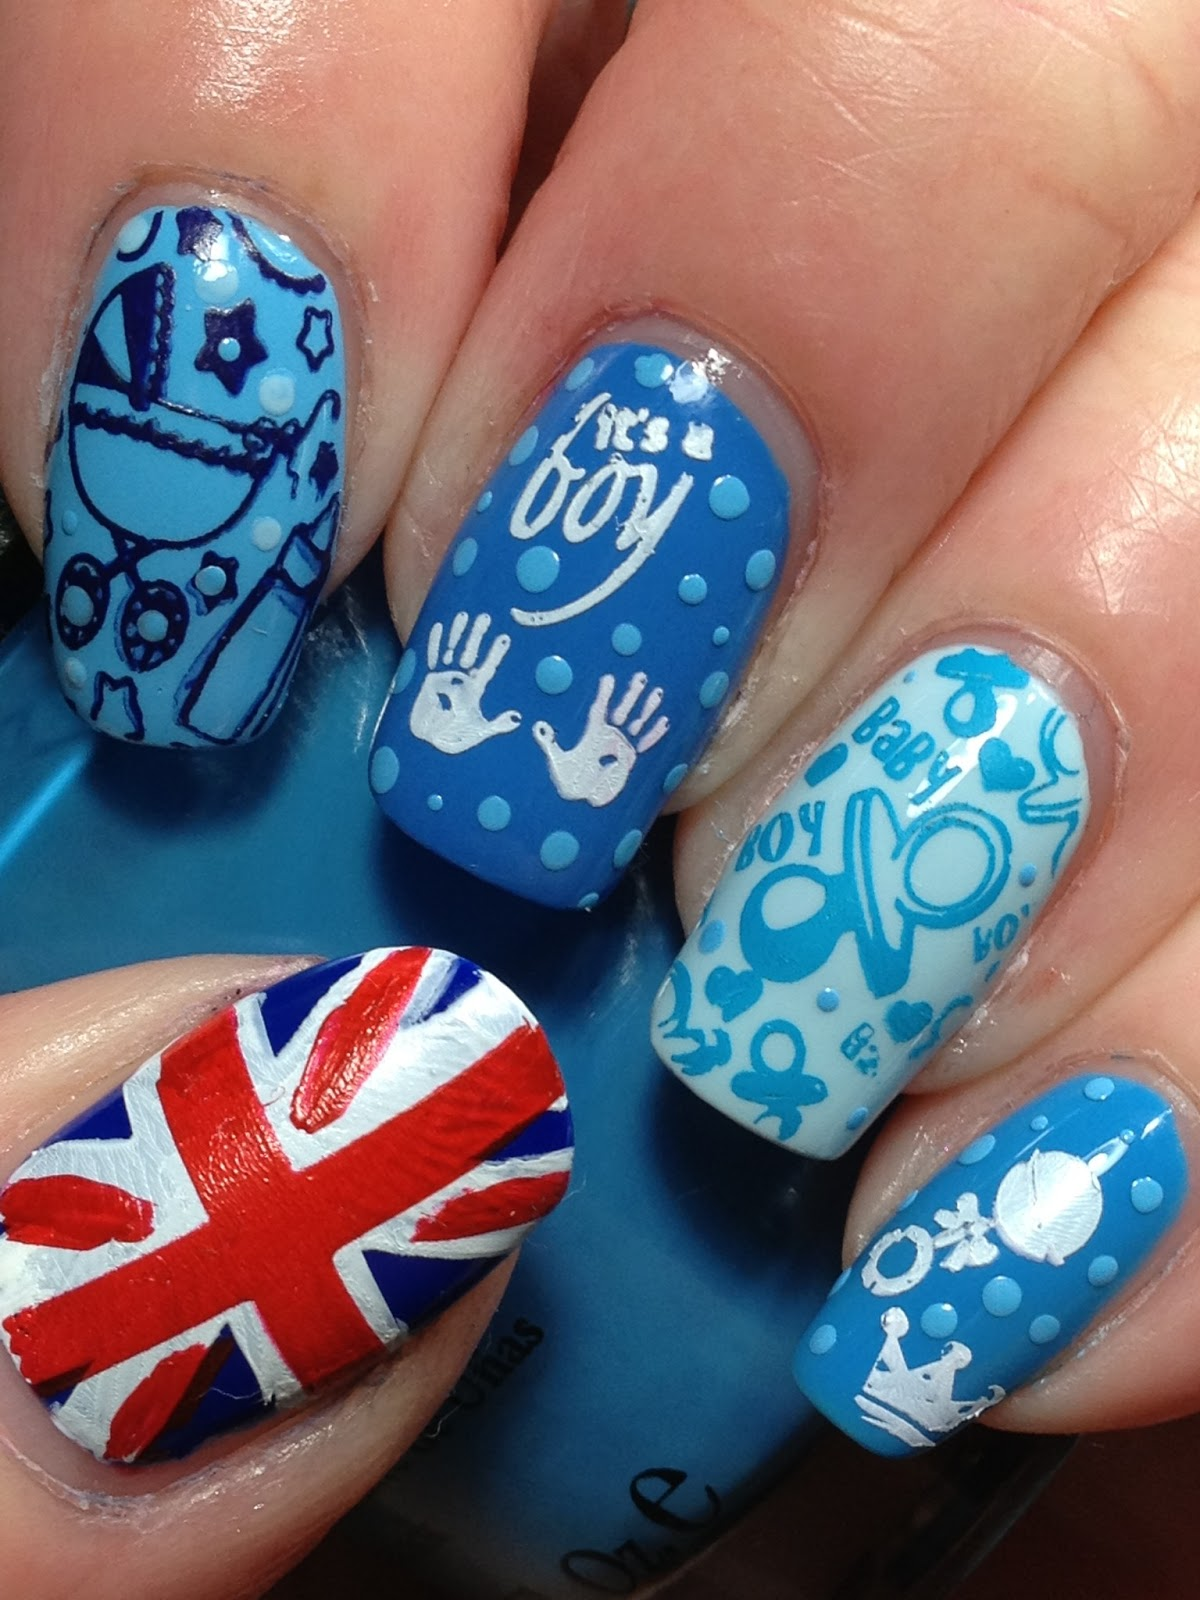 Starting at the thumb and going clockwise, the polishes used are SpaRitual  Circle of Life, China Glaze Bahamian Escape, Essie Avenue Maintain, ... - It's A Boy! Nail Art Ideas